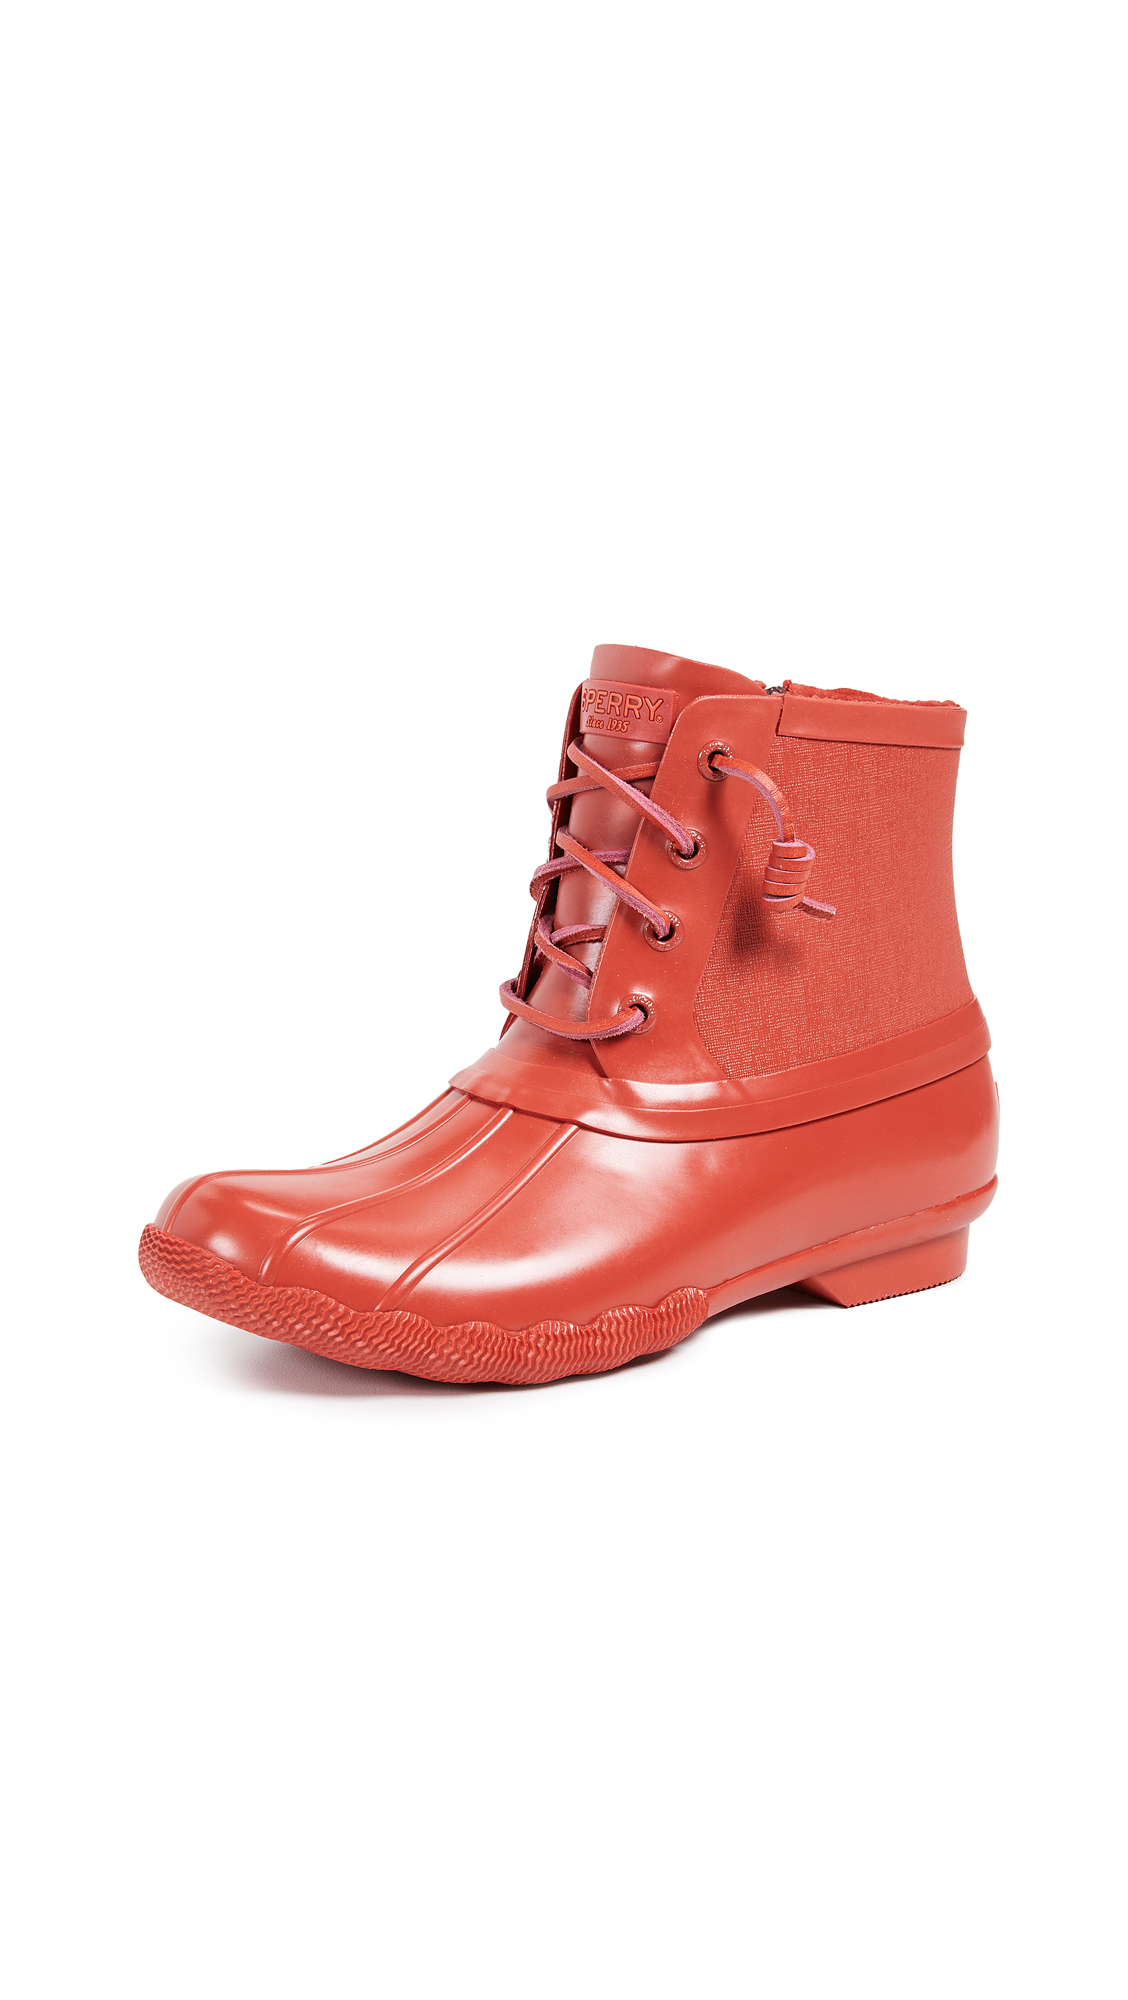 Sperry Saltwater Rubber Flooded Boots - Red